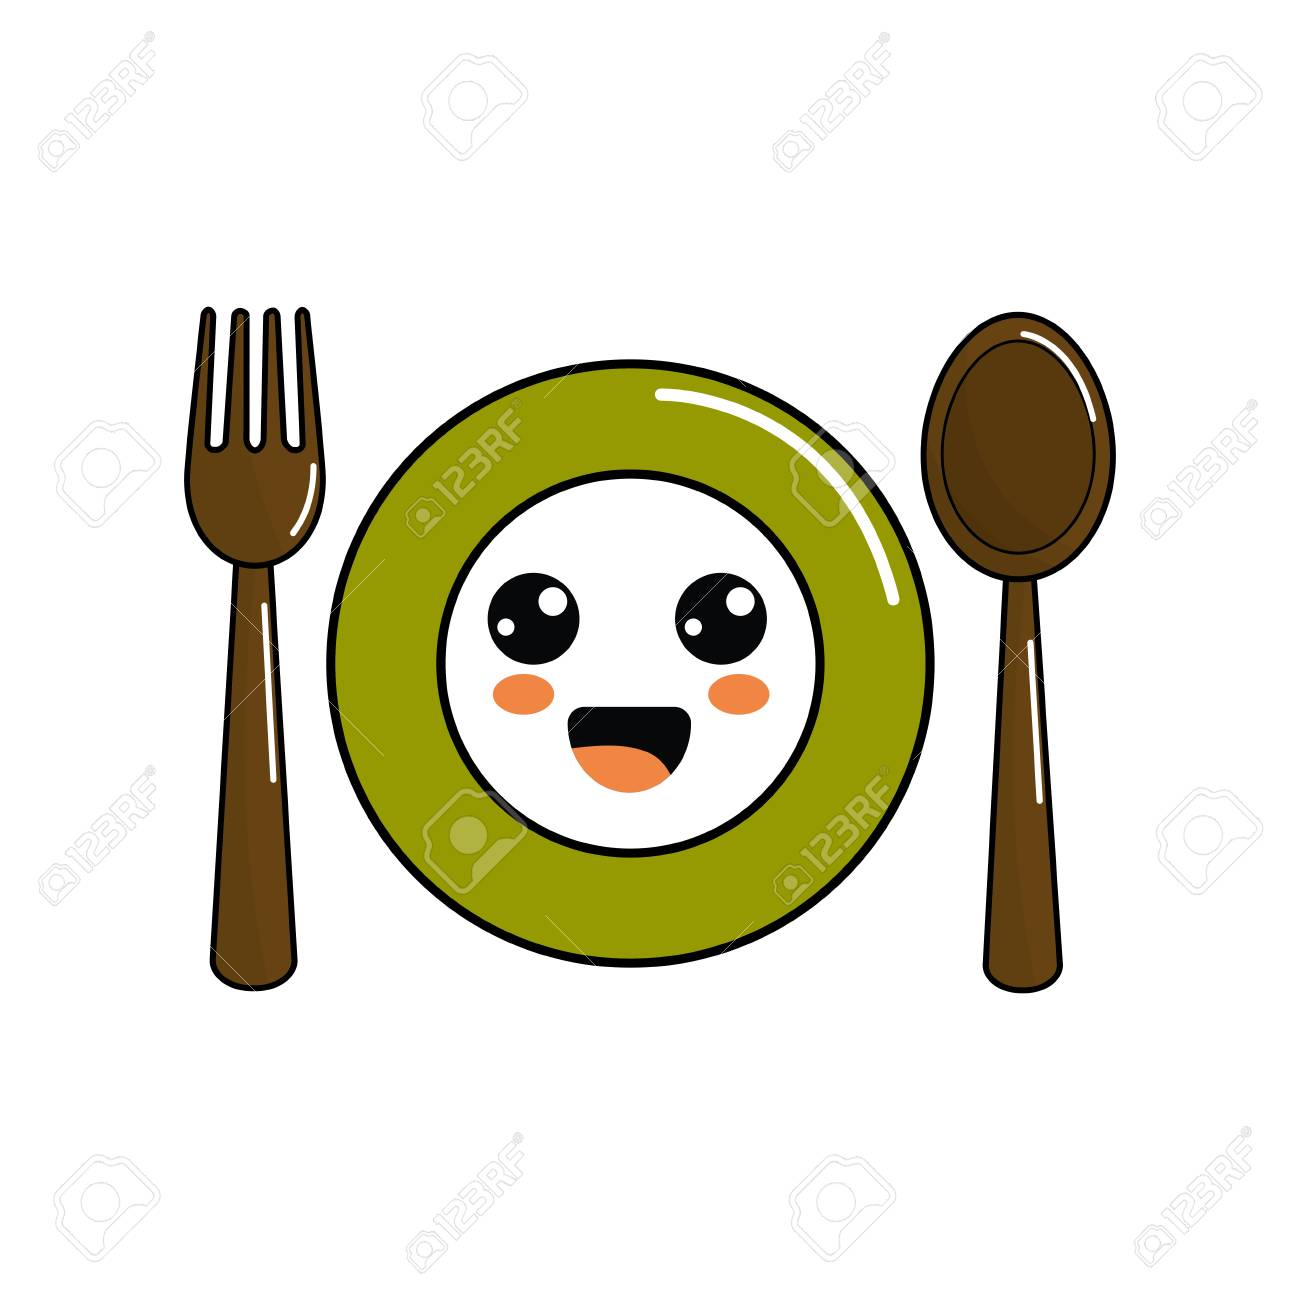 Spoon Clipart Png - Plate And Silverware Clipart, Transparent Png ,  Transparent Png Image - PNGitem